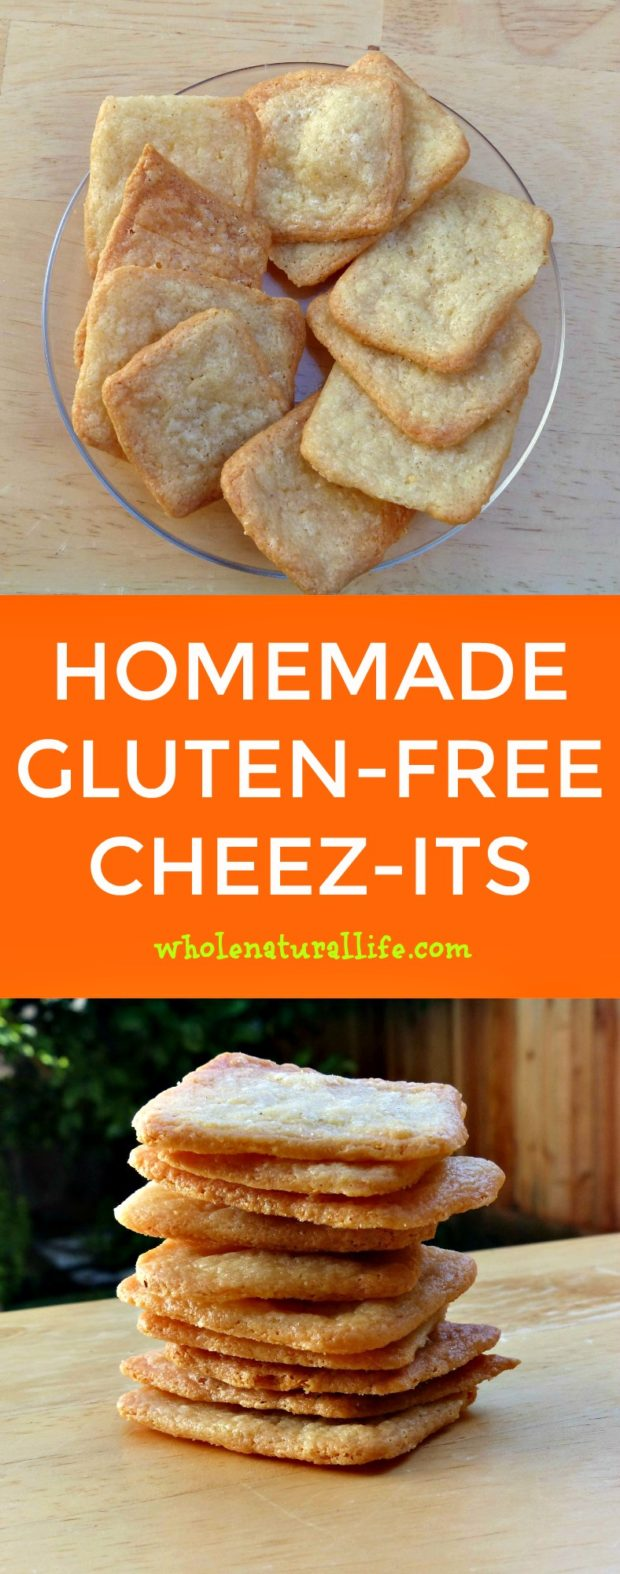 Gluten-free cheez-its | Homemade cheez-its | Gluten-free cheese crackers | Healthy cheese crackers